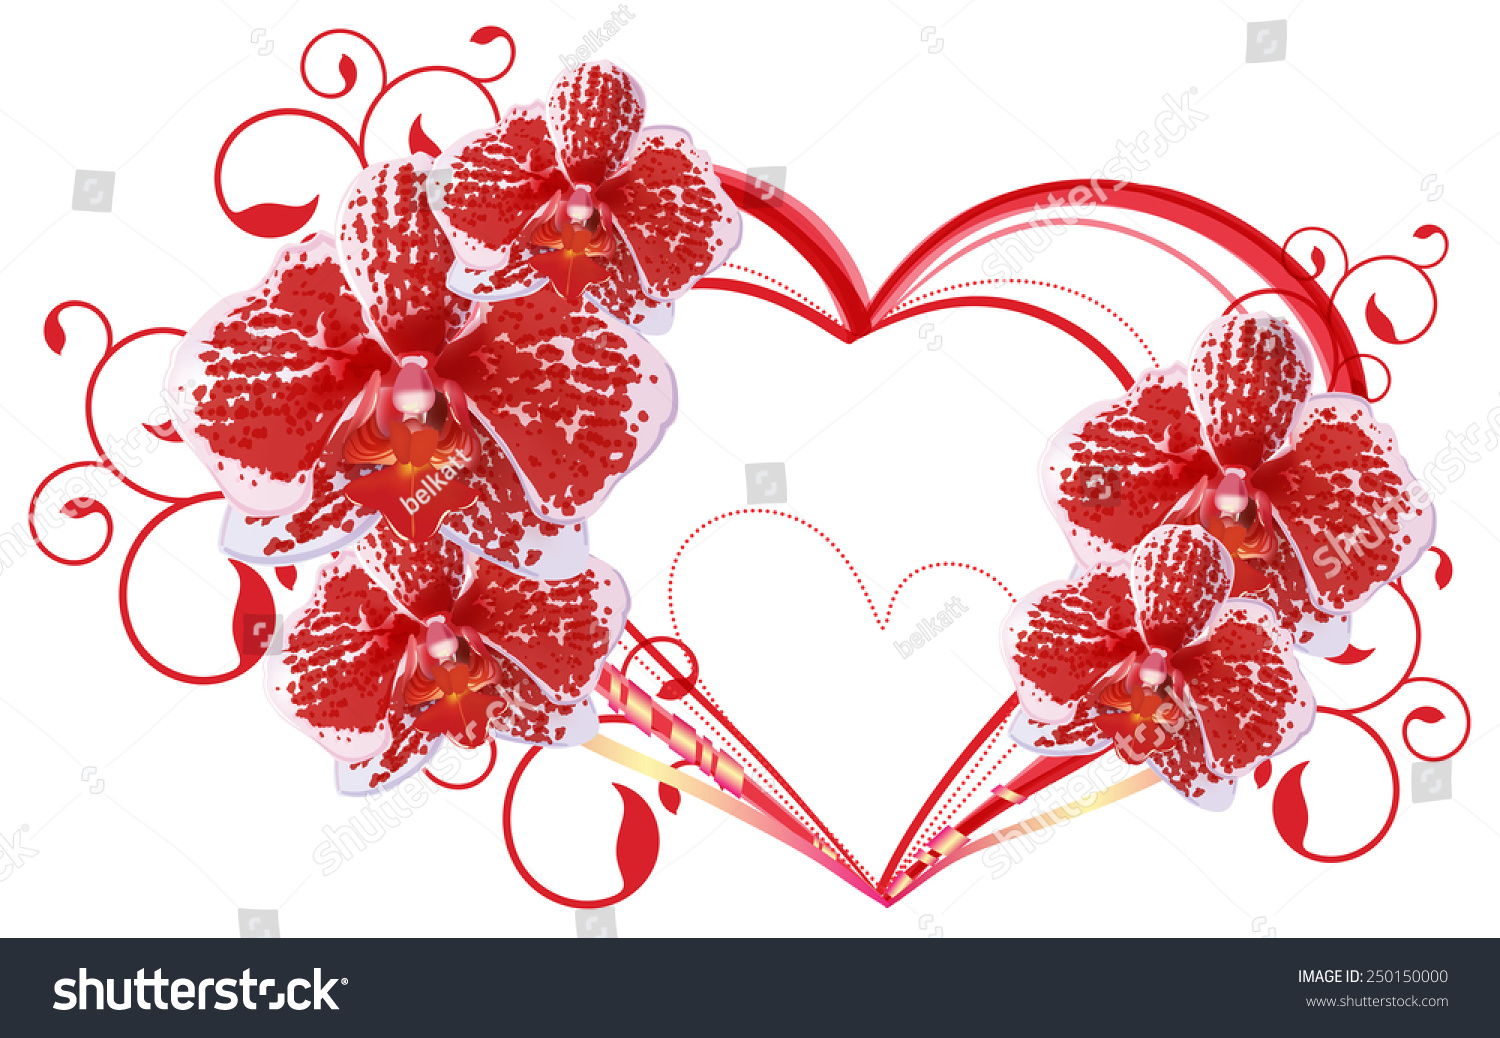 Burgundy Wine Orchid Flowers Shape Heart Stock Vector (Royalty Free ...